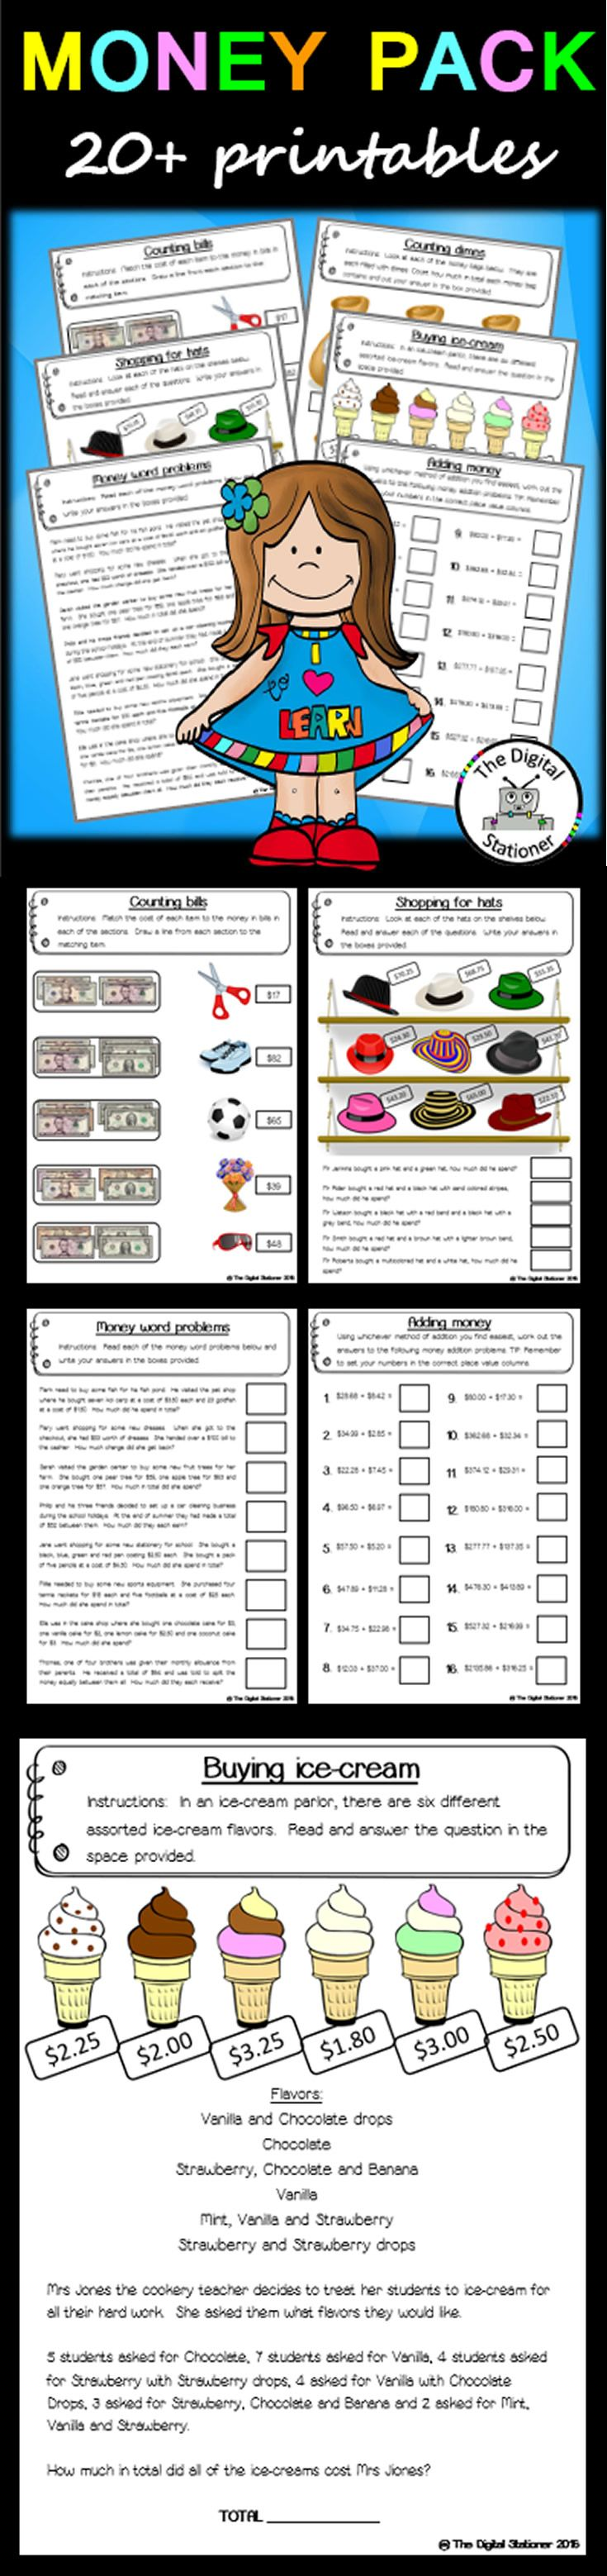 worksheet Practical Money Skills Worksheets 1000 ideas about money activities on pinterest teaching 2 problems 20 worksheets printables maths resources